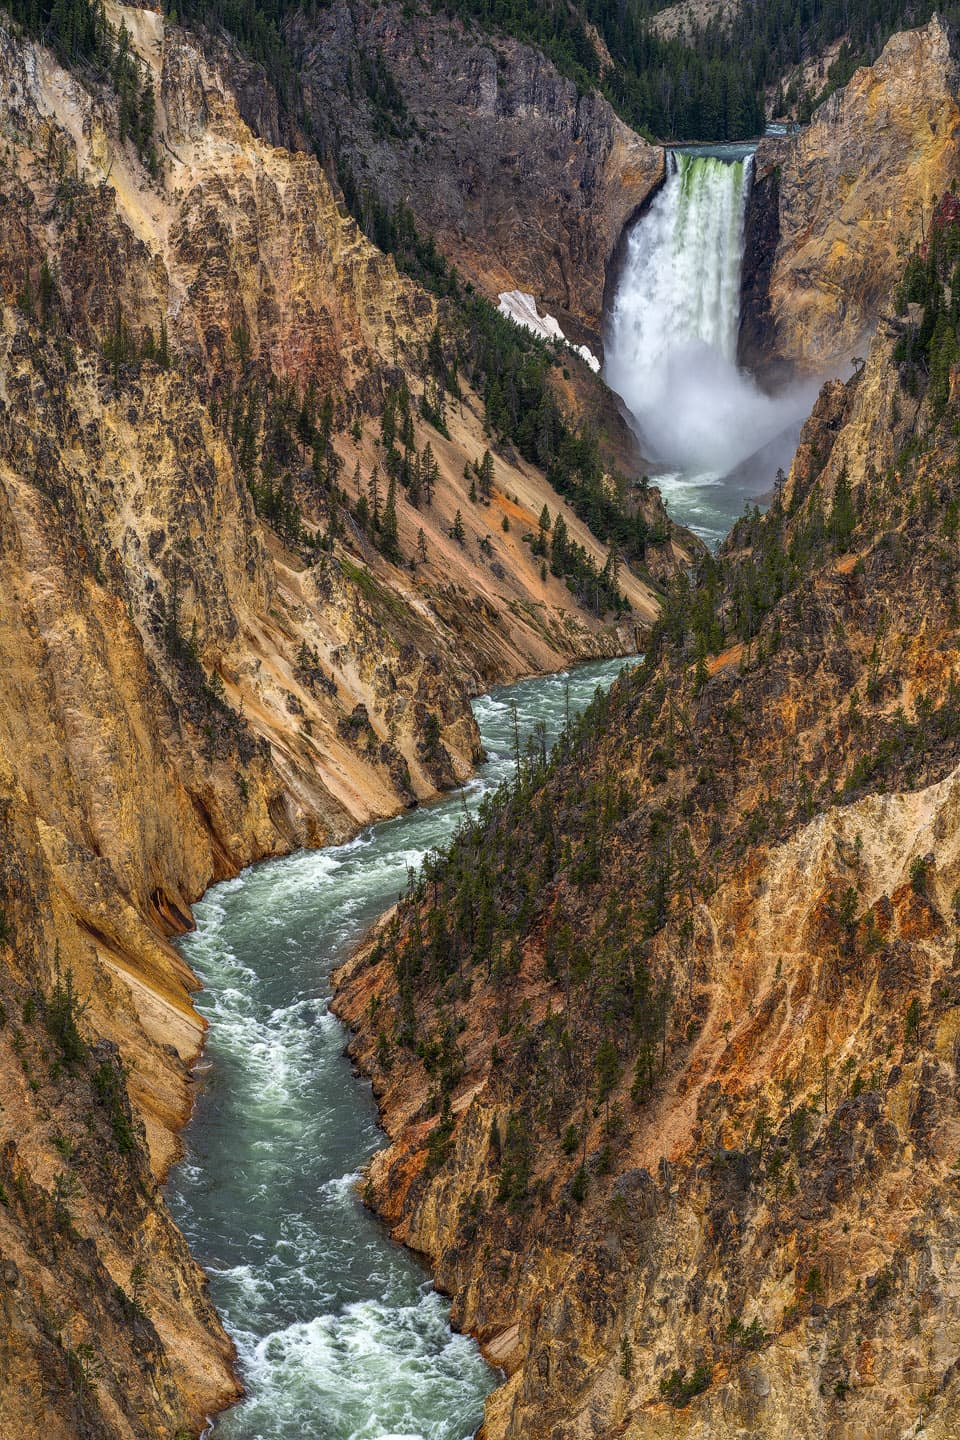 Mighty Falls of the Yellowstone - Lower Falls of the Yellowstone, Yellowstone National Park, Wyoming